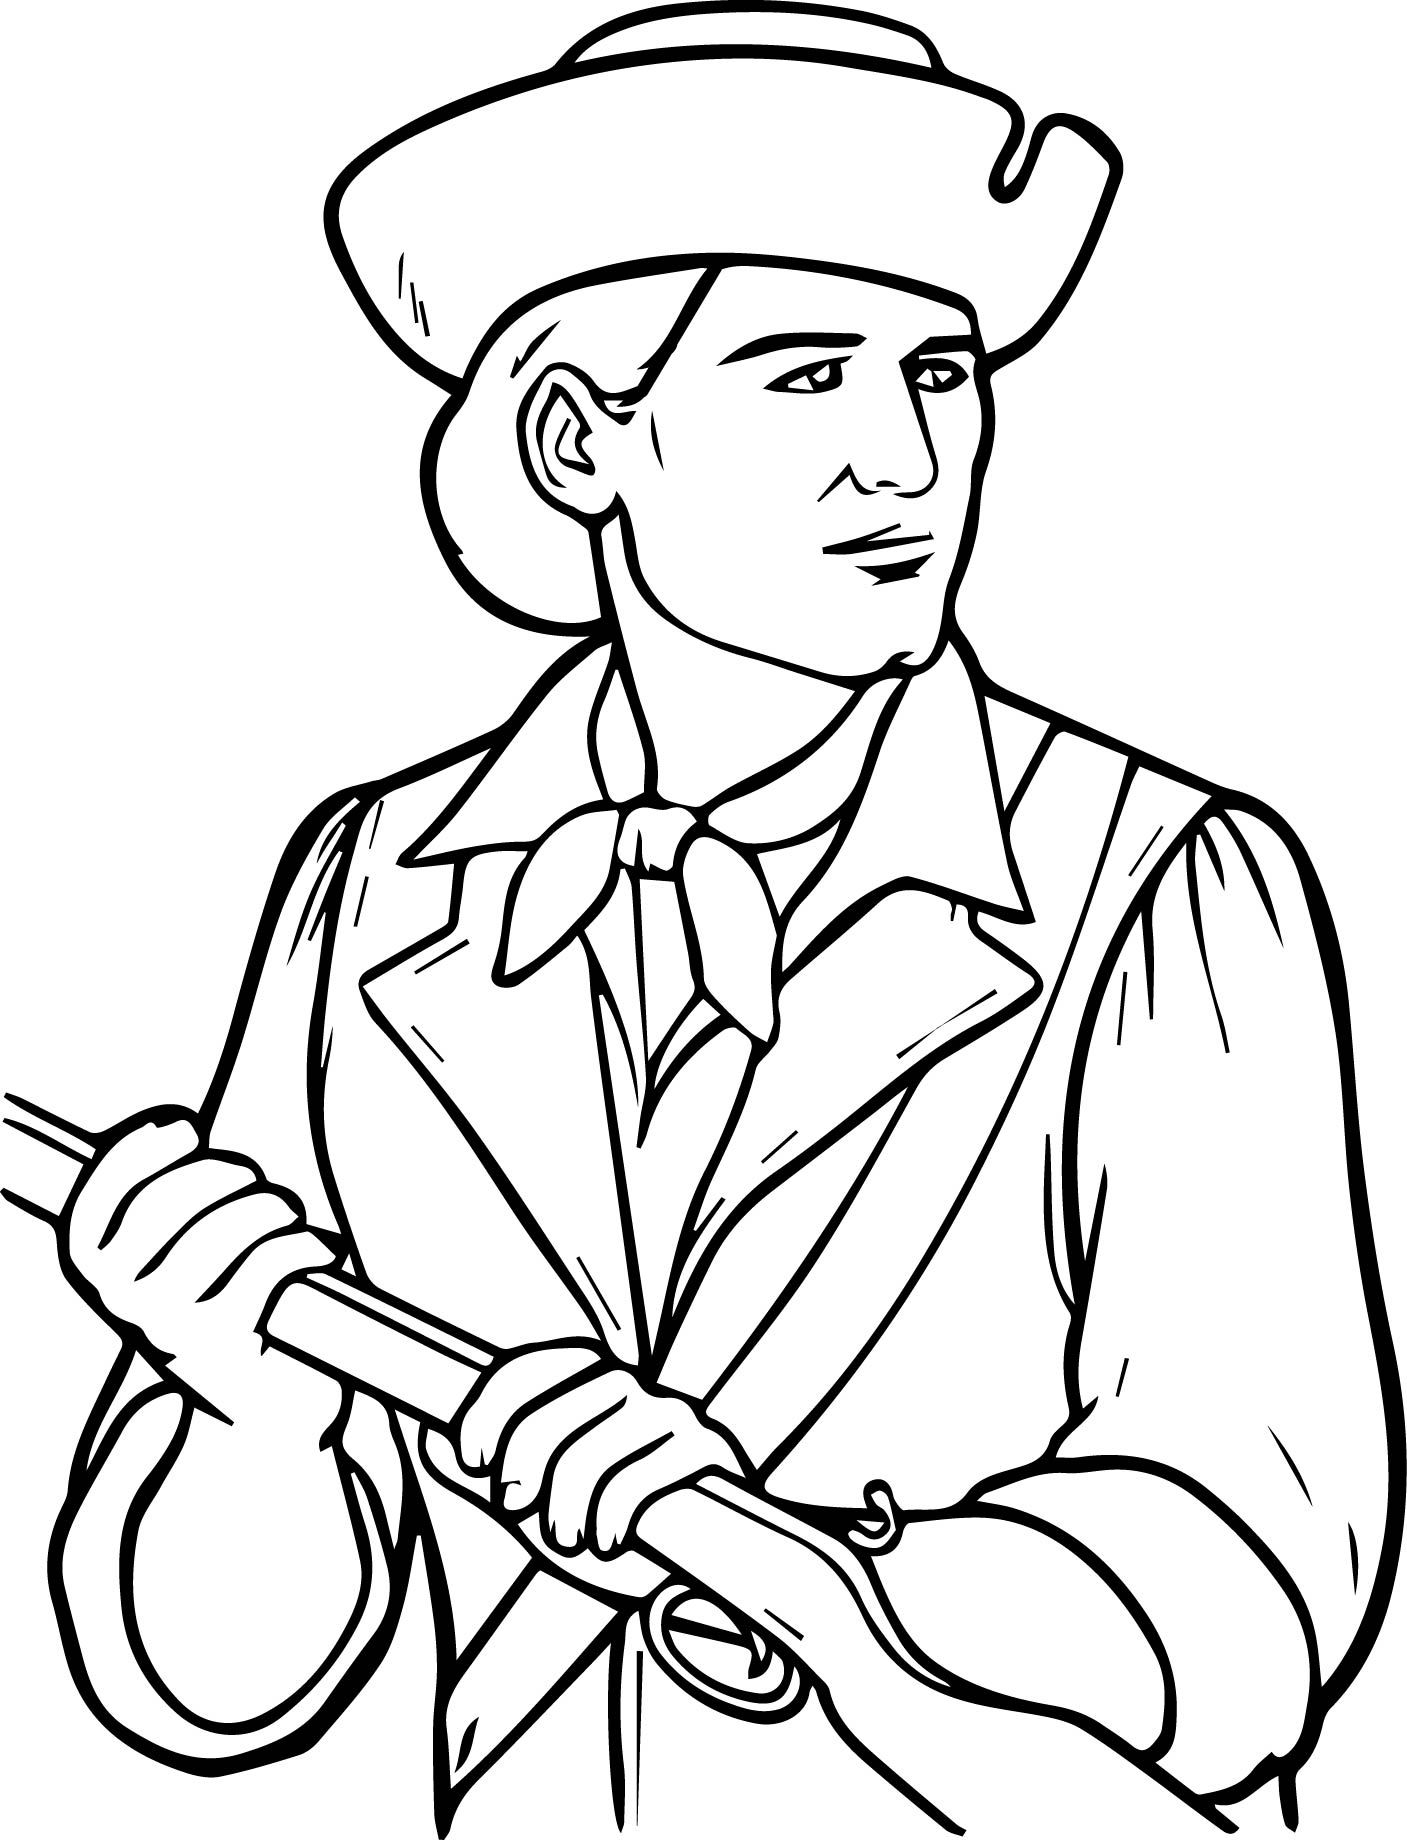 Awesome Usa Printables The Minutemen Coloring Pages America